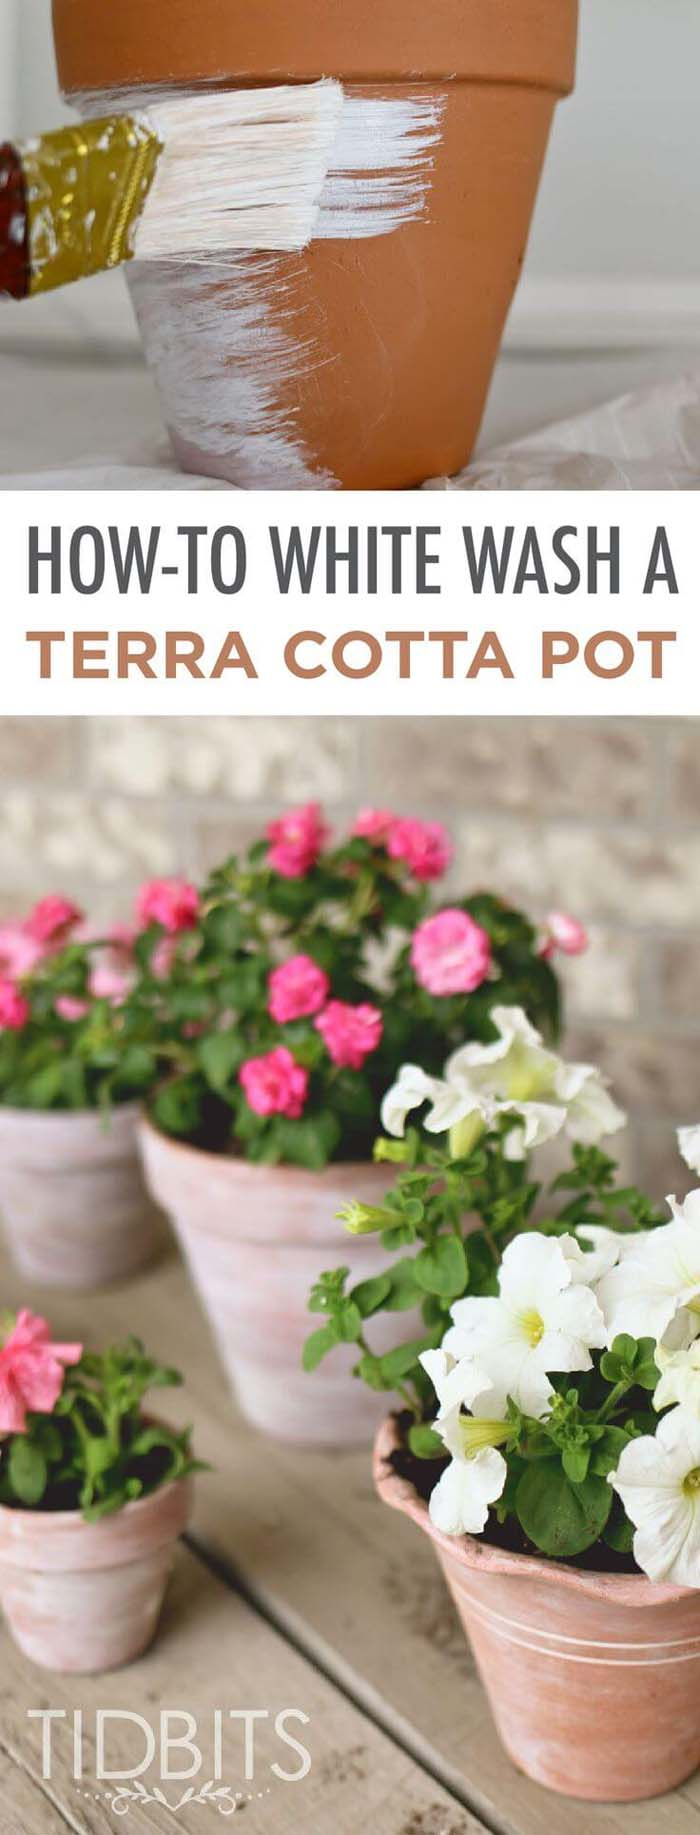 How to Distress New Terra Cotta Pots #diy #porch #patio #projects #colorful #decorhomeideas